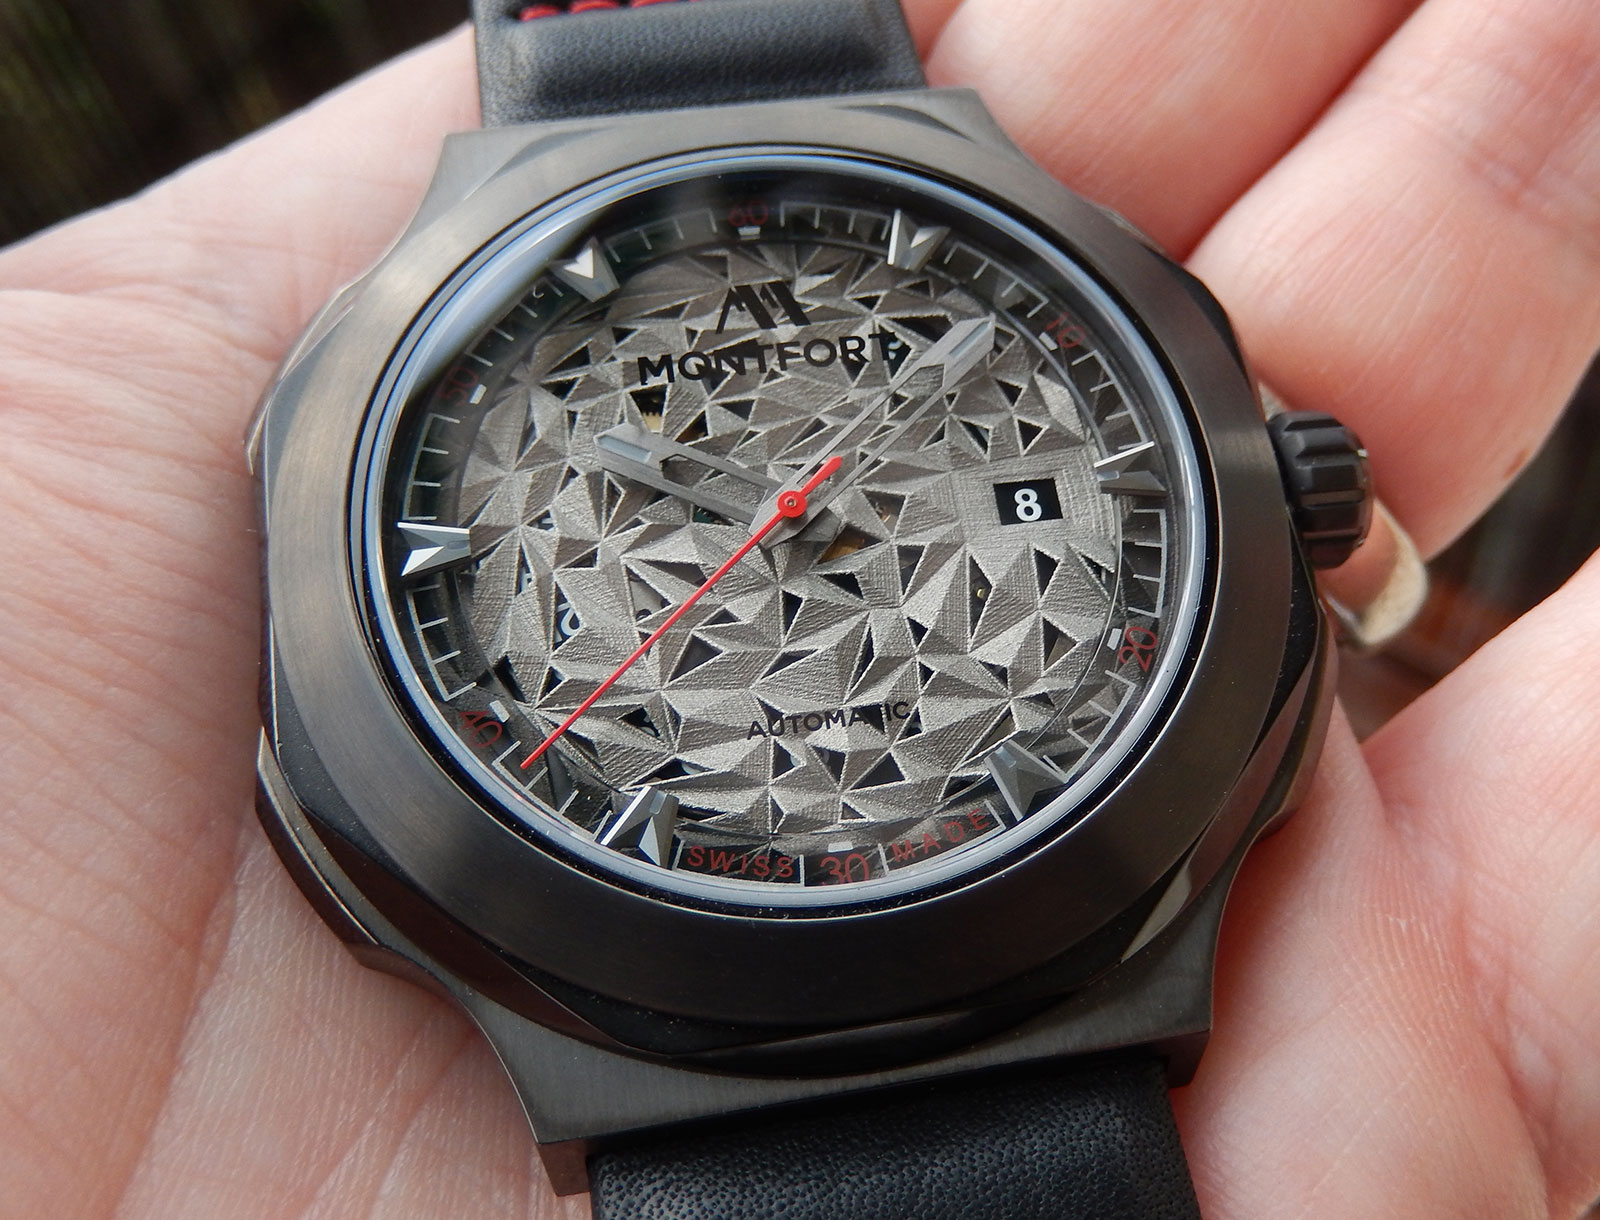 Montfront Strata watch 3D printed dial 1